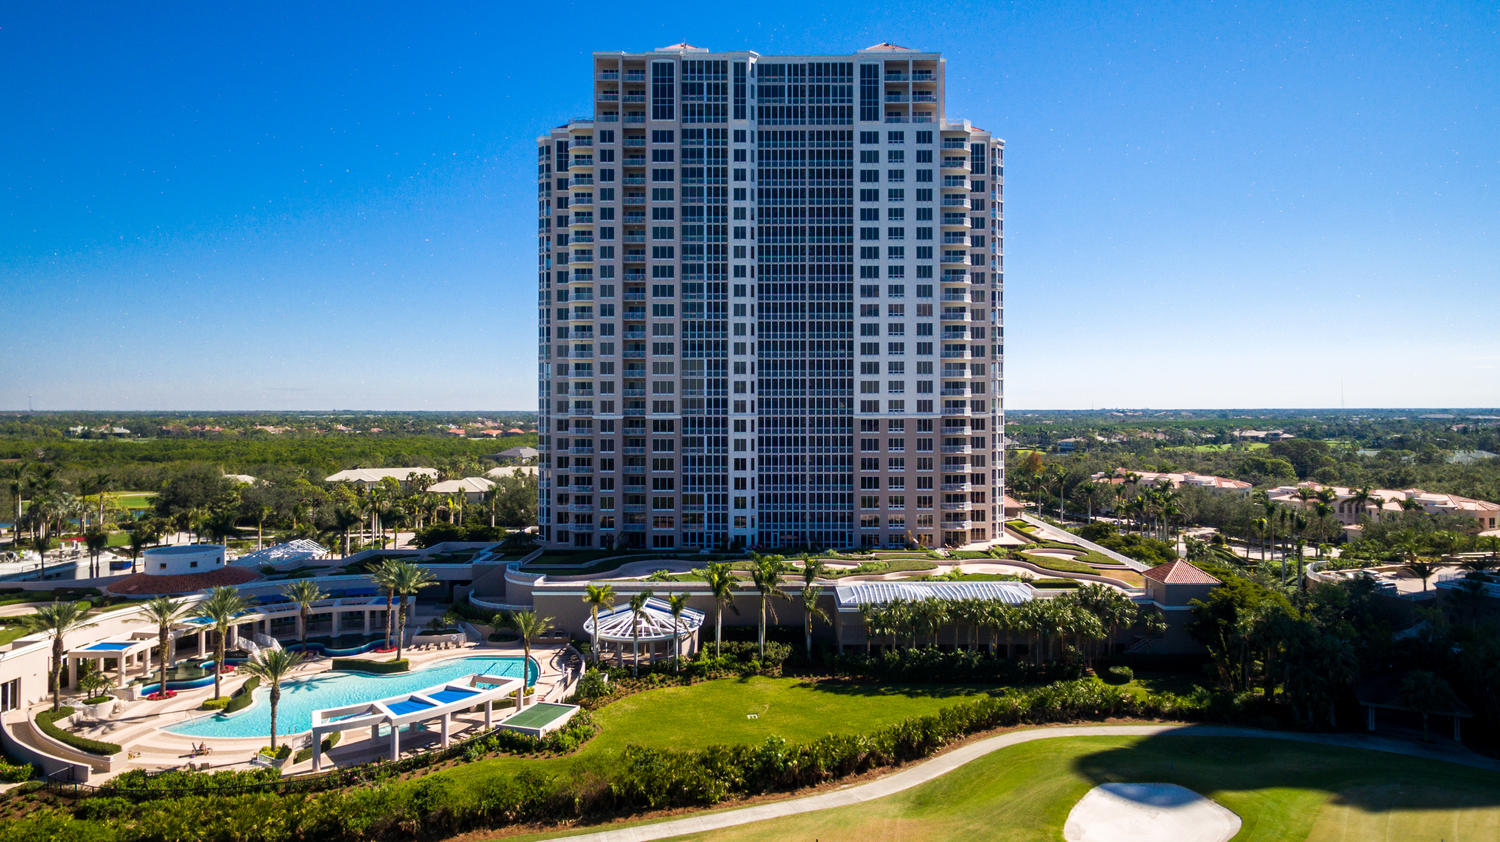 4751 Bonita Bay Blvd UNIT 303-large-028-3-DJI 0008-1500x843-72dpi